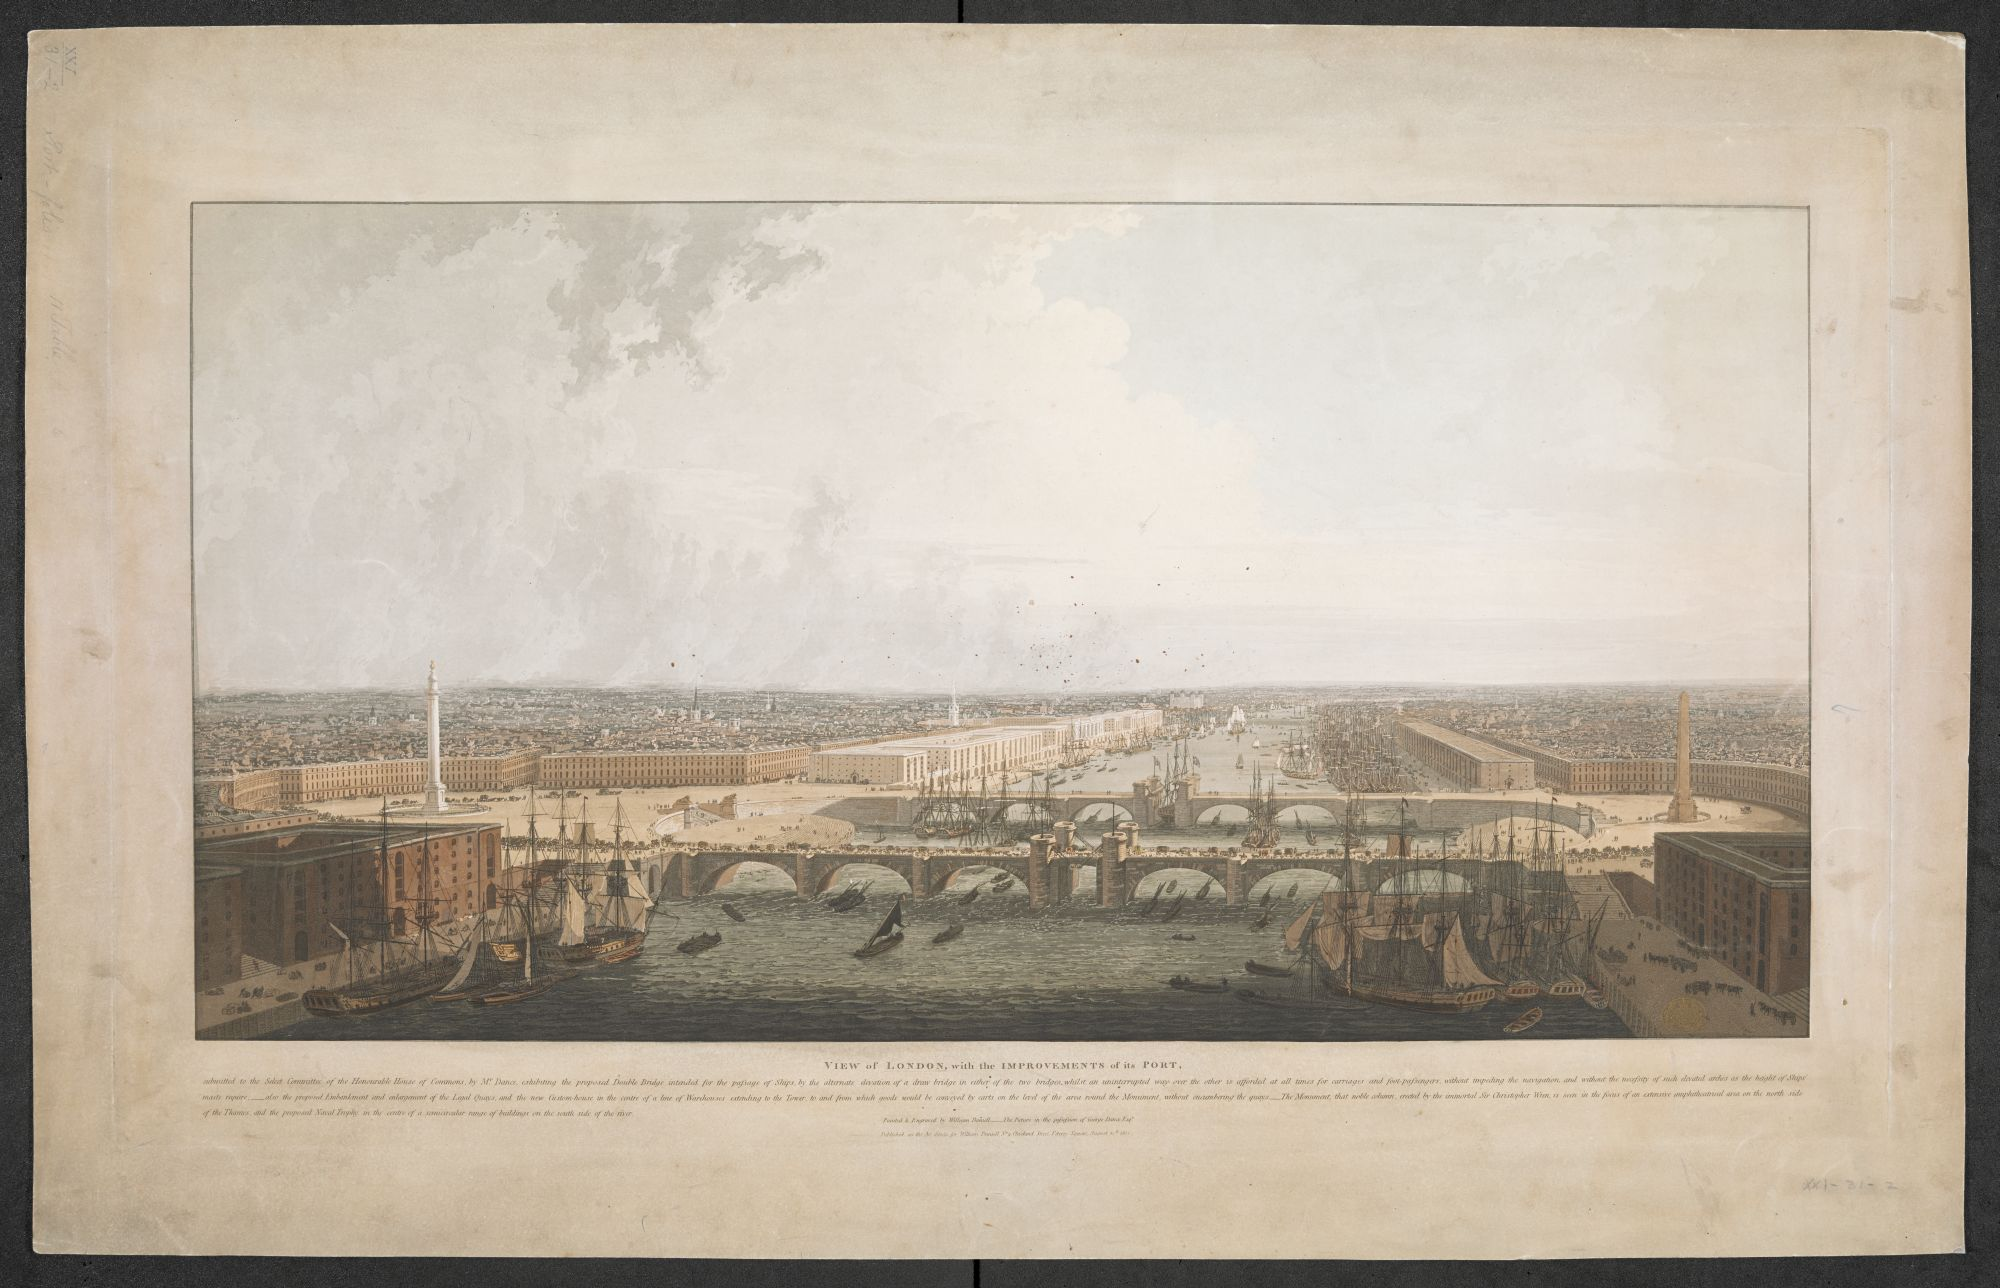 William Daniell, View of London, with the Improvements of its PORT: submitted to the Select Committee of the Honourable House of Commons, by Mr Dance, exhibiting the proposed Double Bridge intended for the passage of Ships, published by William Daniell, London, 1802, aquatint with hand colouring, plate 49 x 86 cm, on sheet 59.1 x 93.5 cm, British Library, London, Maps K.Top.21.31.2 PORT.11 TAB.